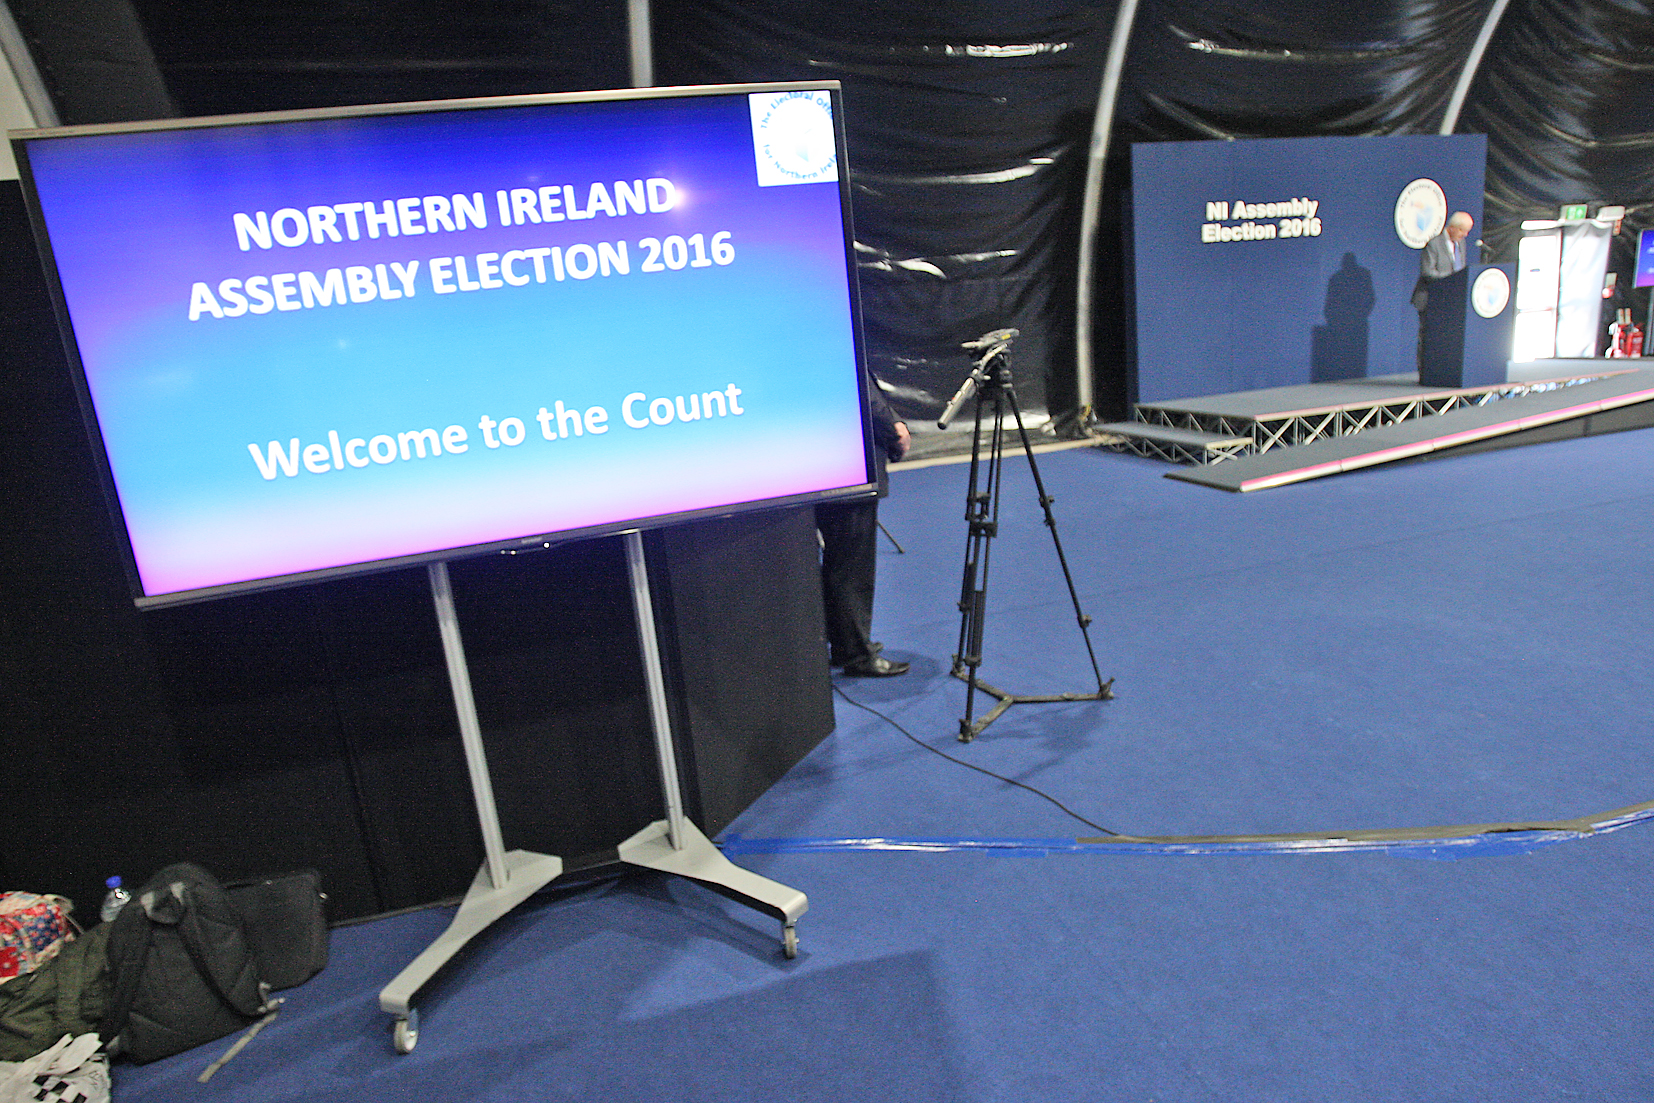 NI Assembly Election 2016 count at the Titanic Exhibition Centre.